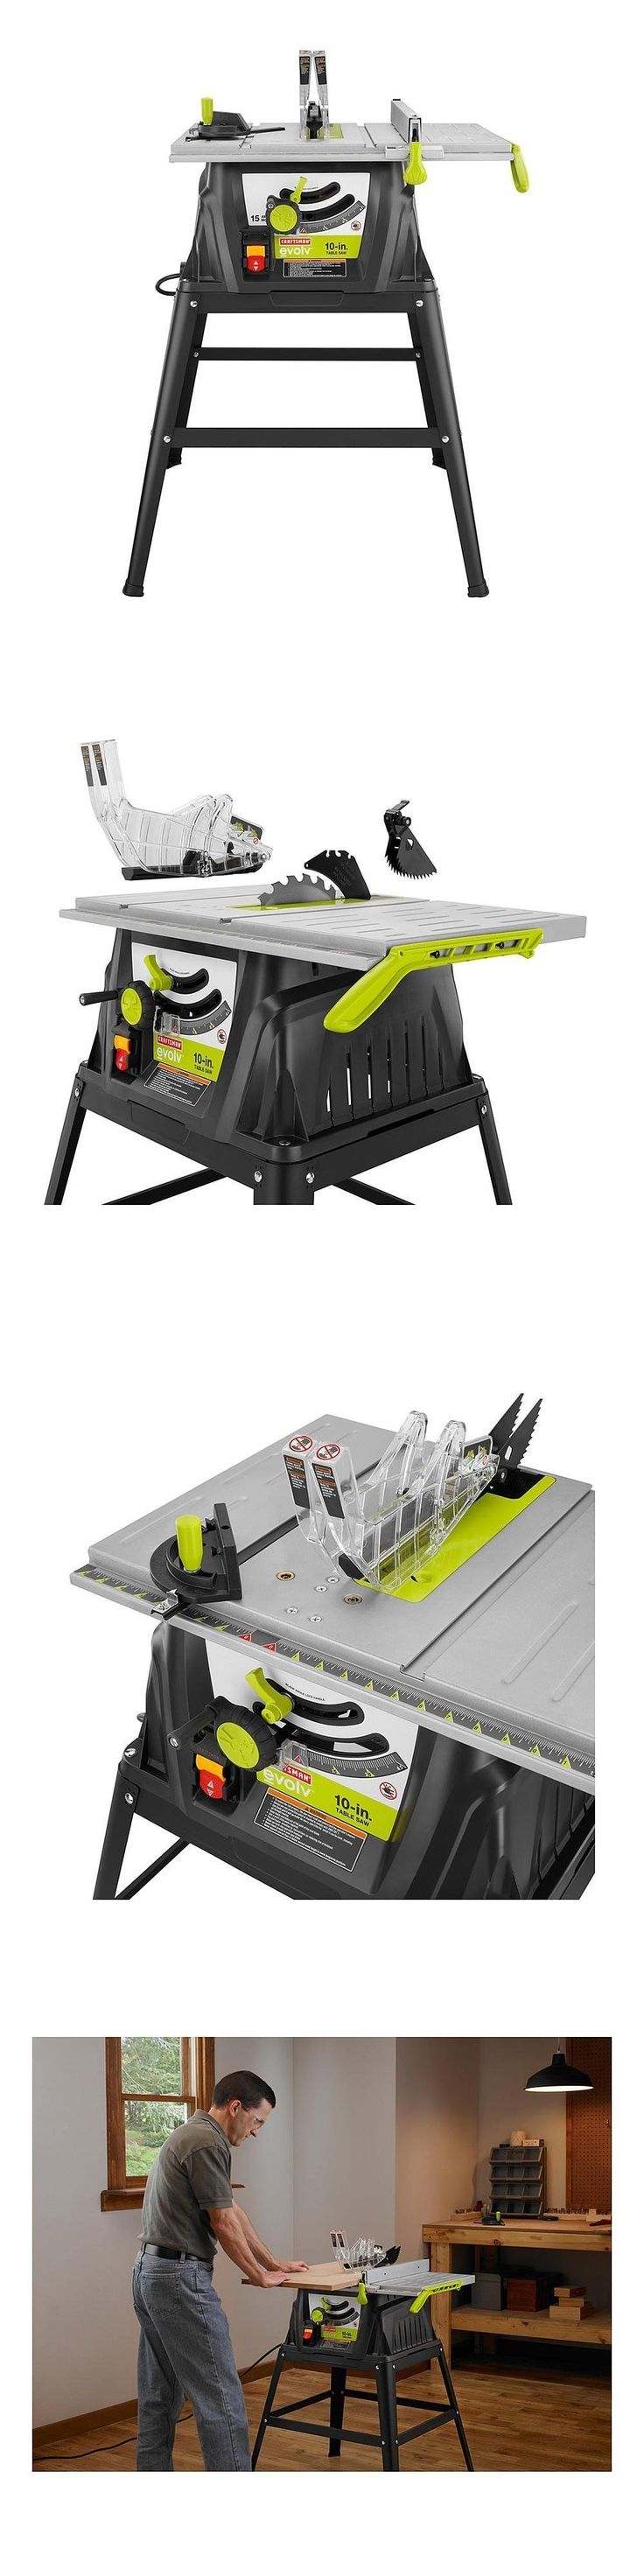 Table Saws 122835: Craftsman Evolv 15 Amp 10 In. Table Saw 28461 - Brand New -> BUY IT NOW ONLY: $159.5 on eBay!